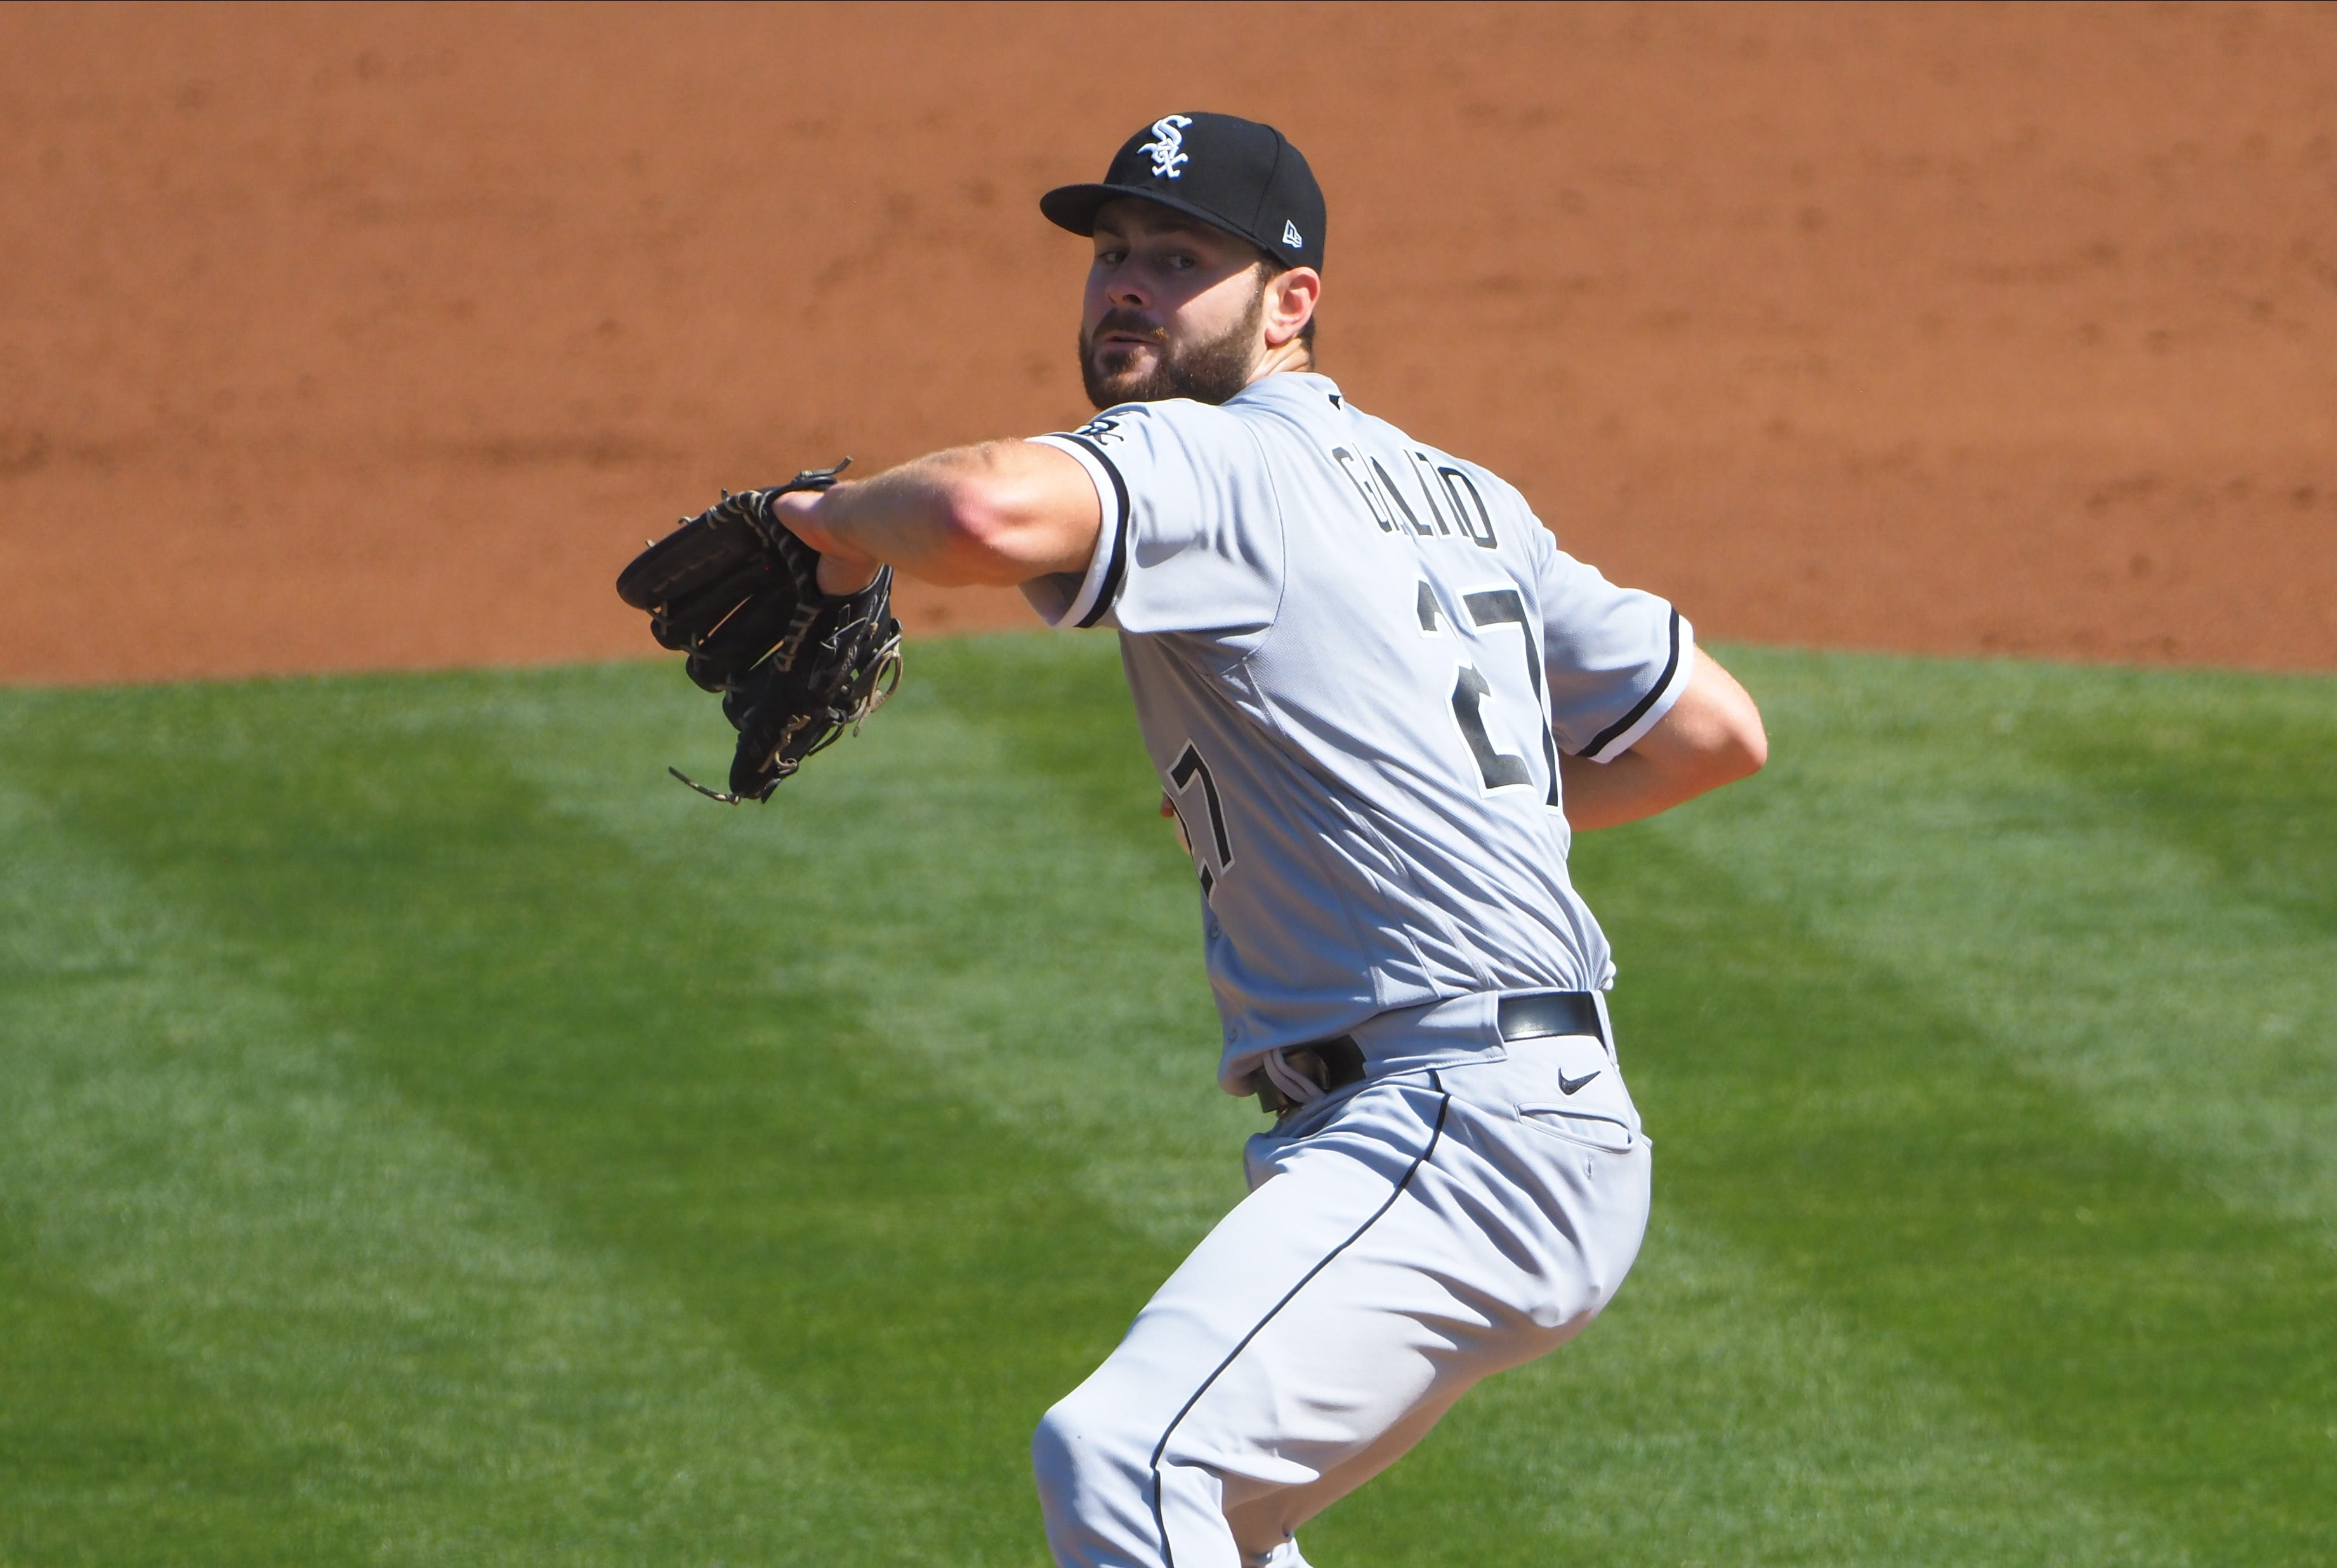 White Sox starter Lucas Giolito's perfect game bids ends in seventh inning vs. Athletics